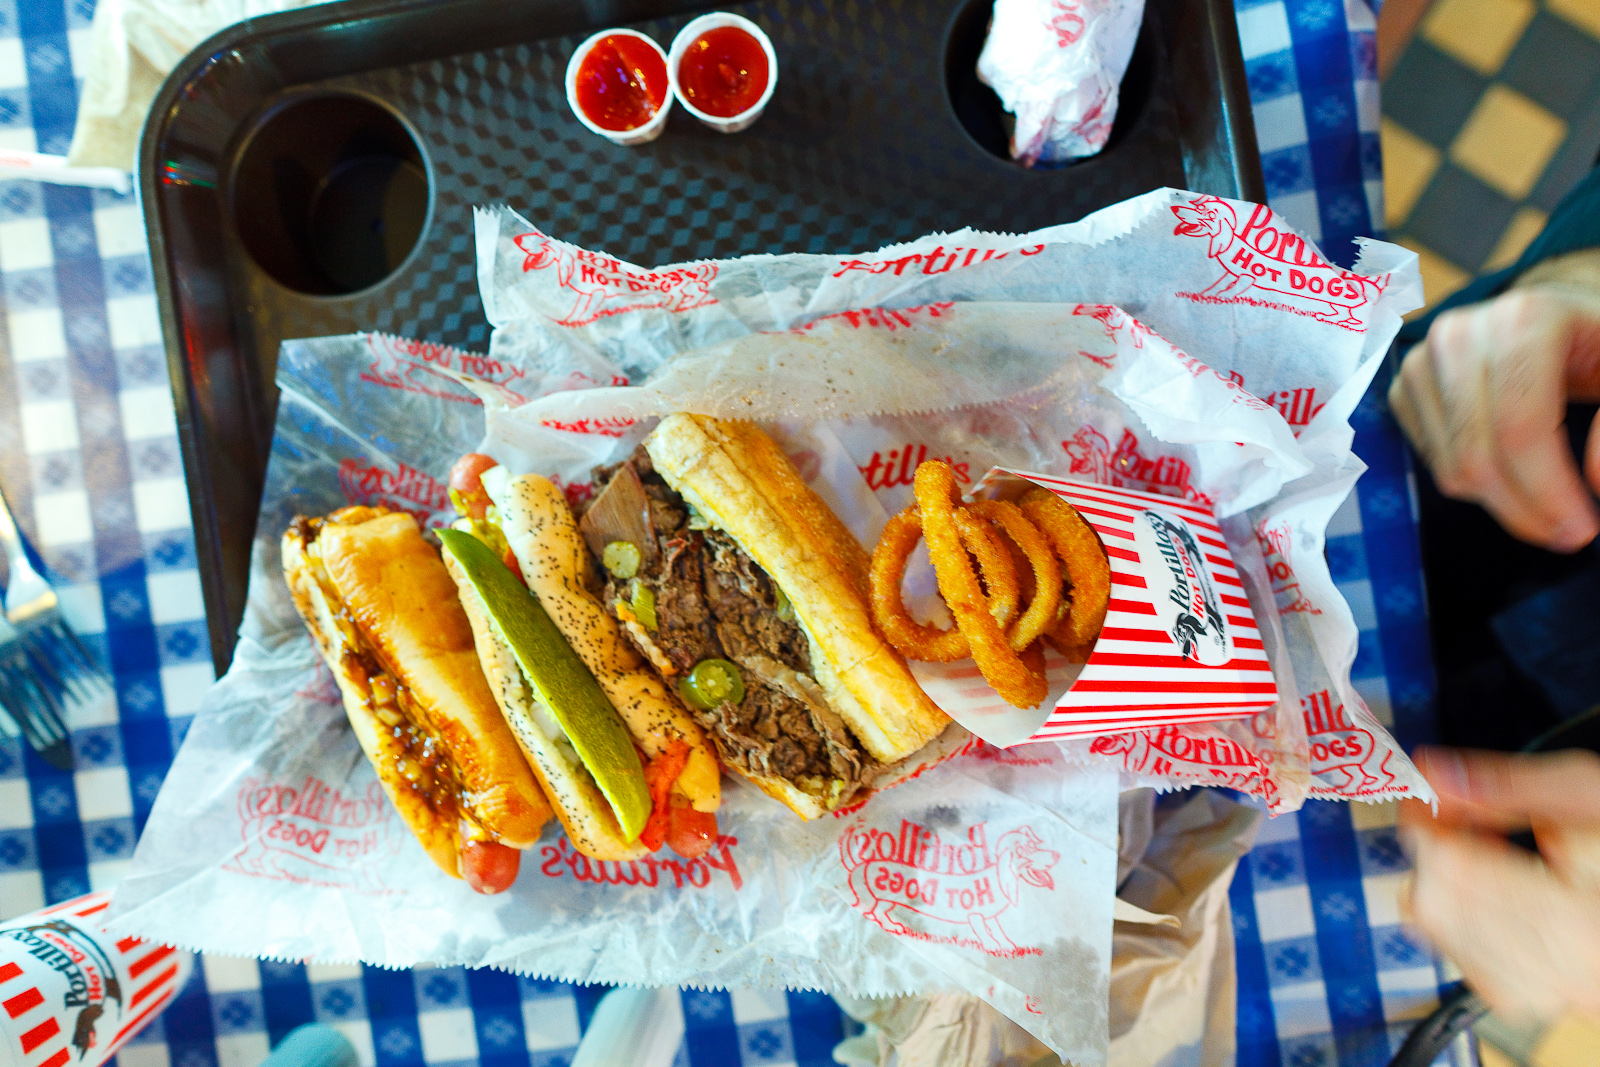 Chili cheese dog, hot dog with everything, Italian beef sandwich, onion rings